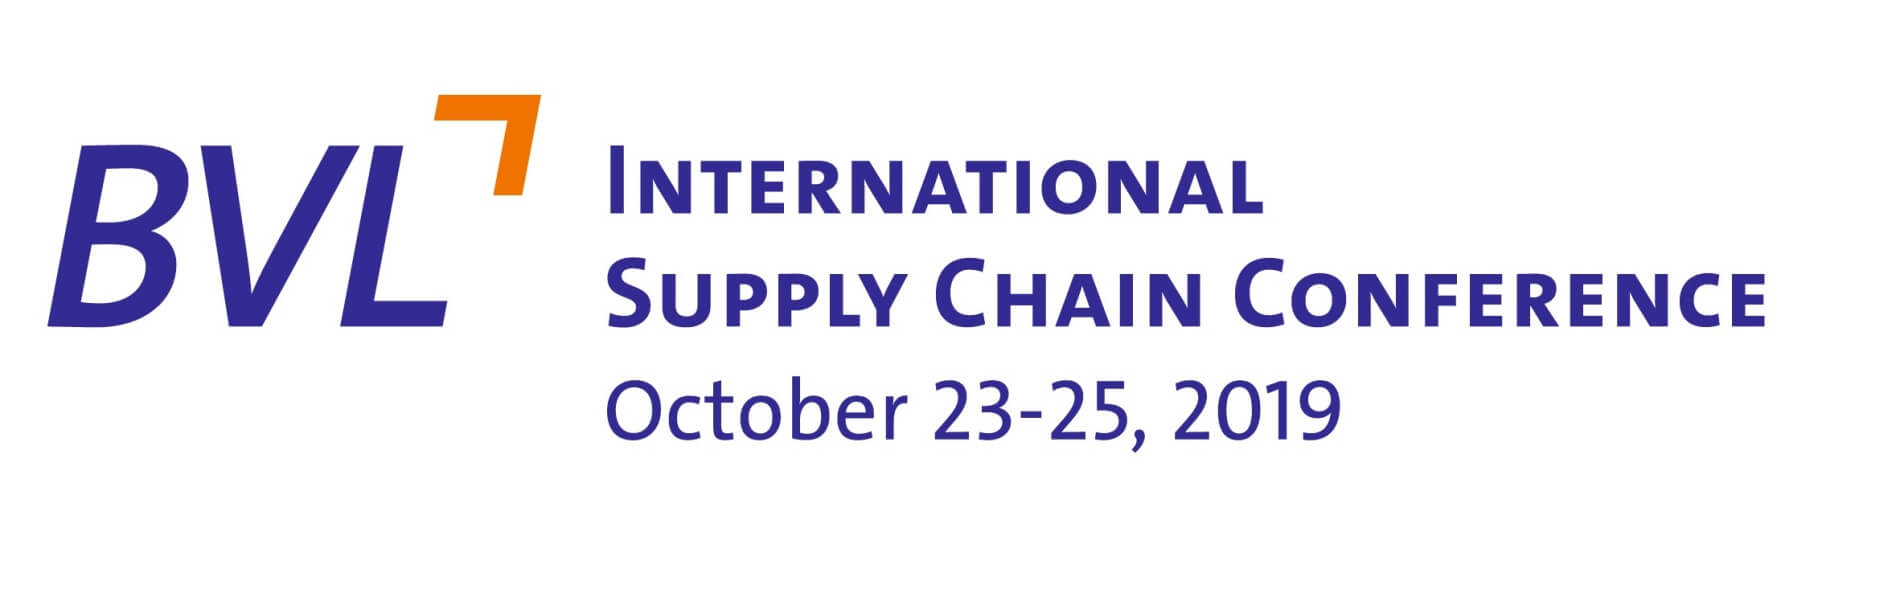 Inspire – Encourage – Act: The International Supply Chain Congress in Berlin